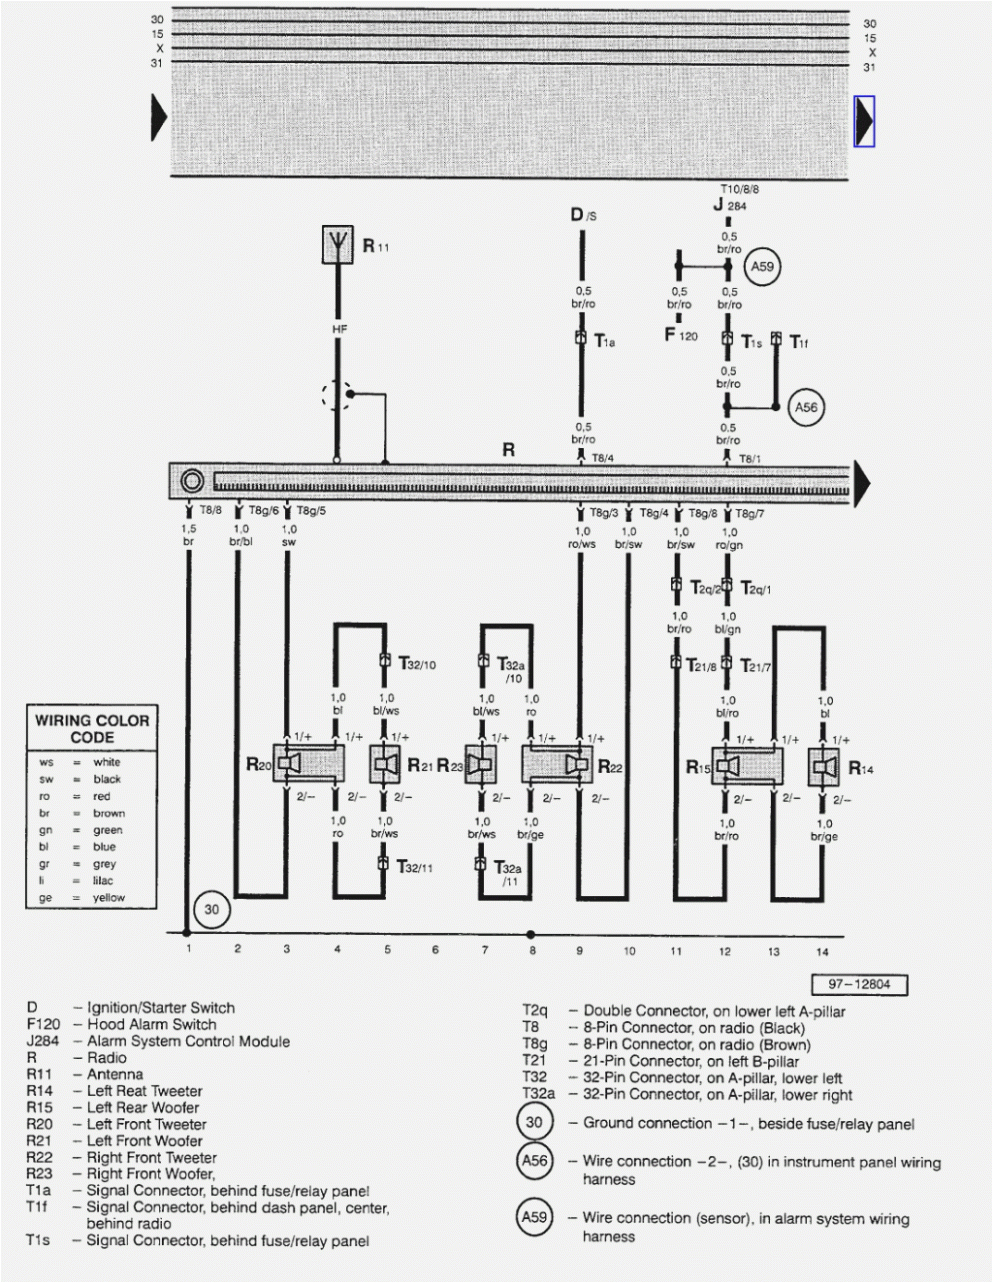 13 vw jetta engine fuse diagram schematics wiring diagrams 2013 vw jetta fuse box diagram gif